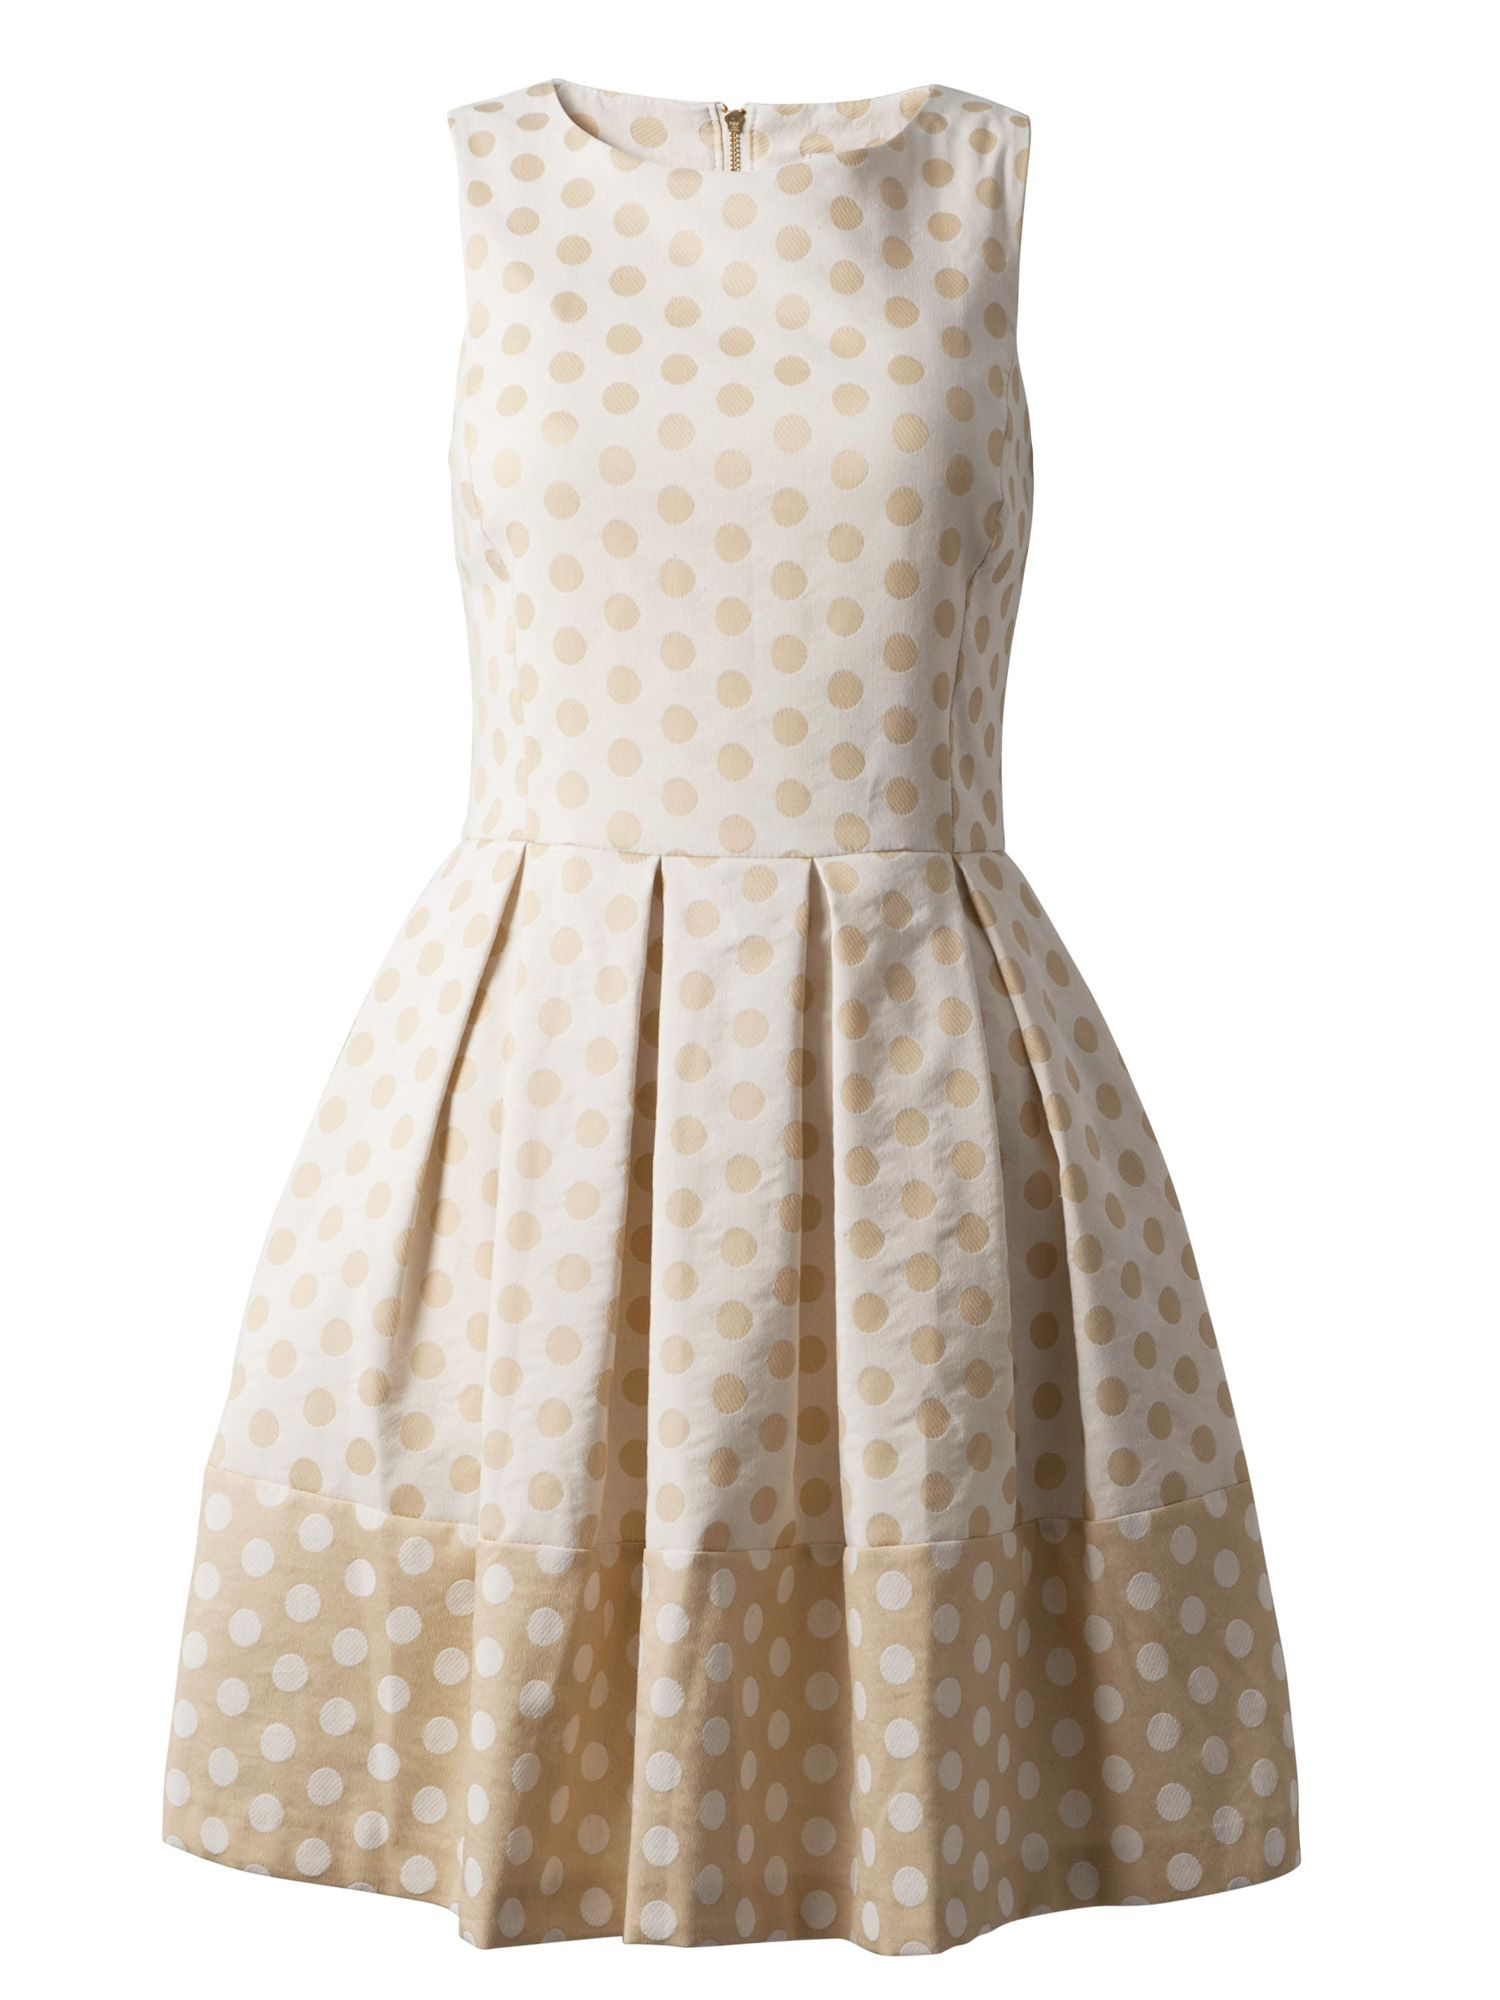 Polka dot flared dress